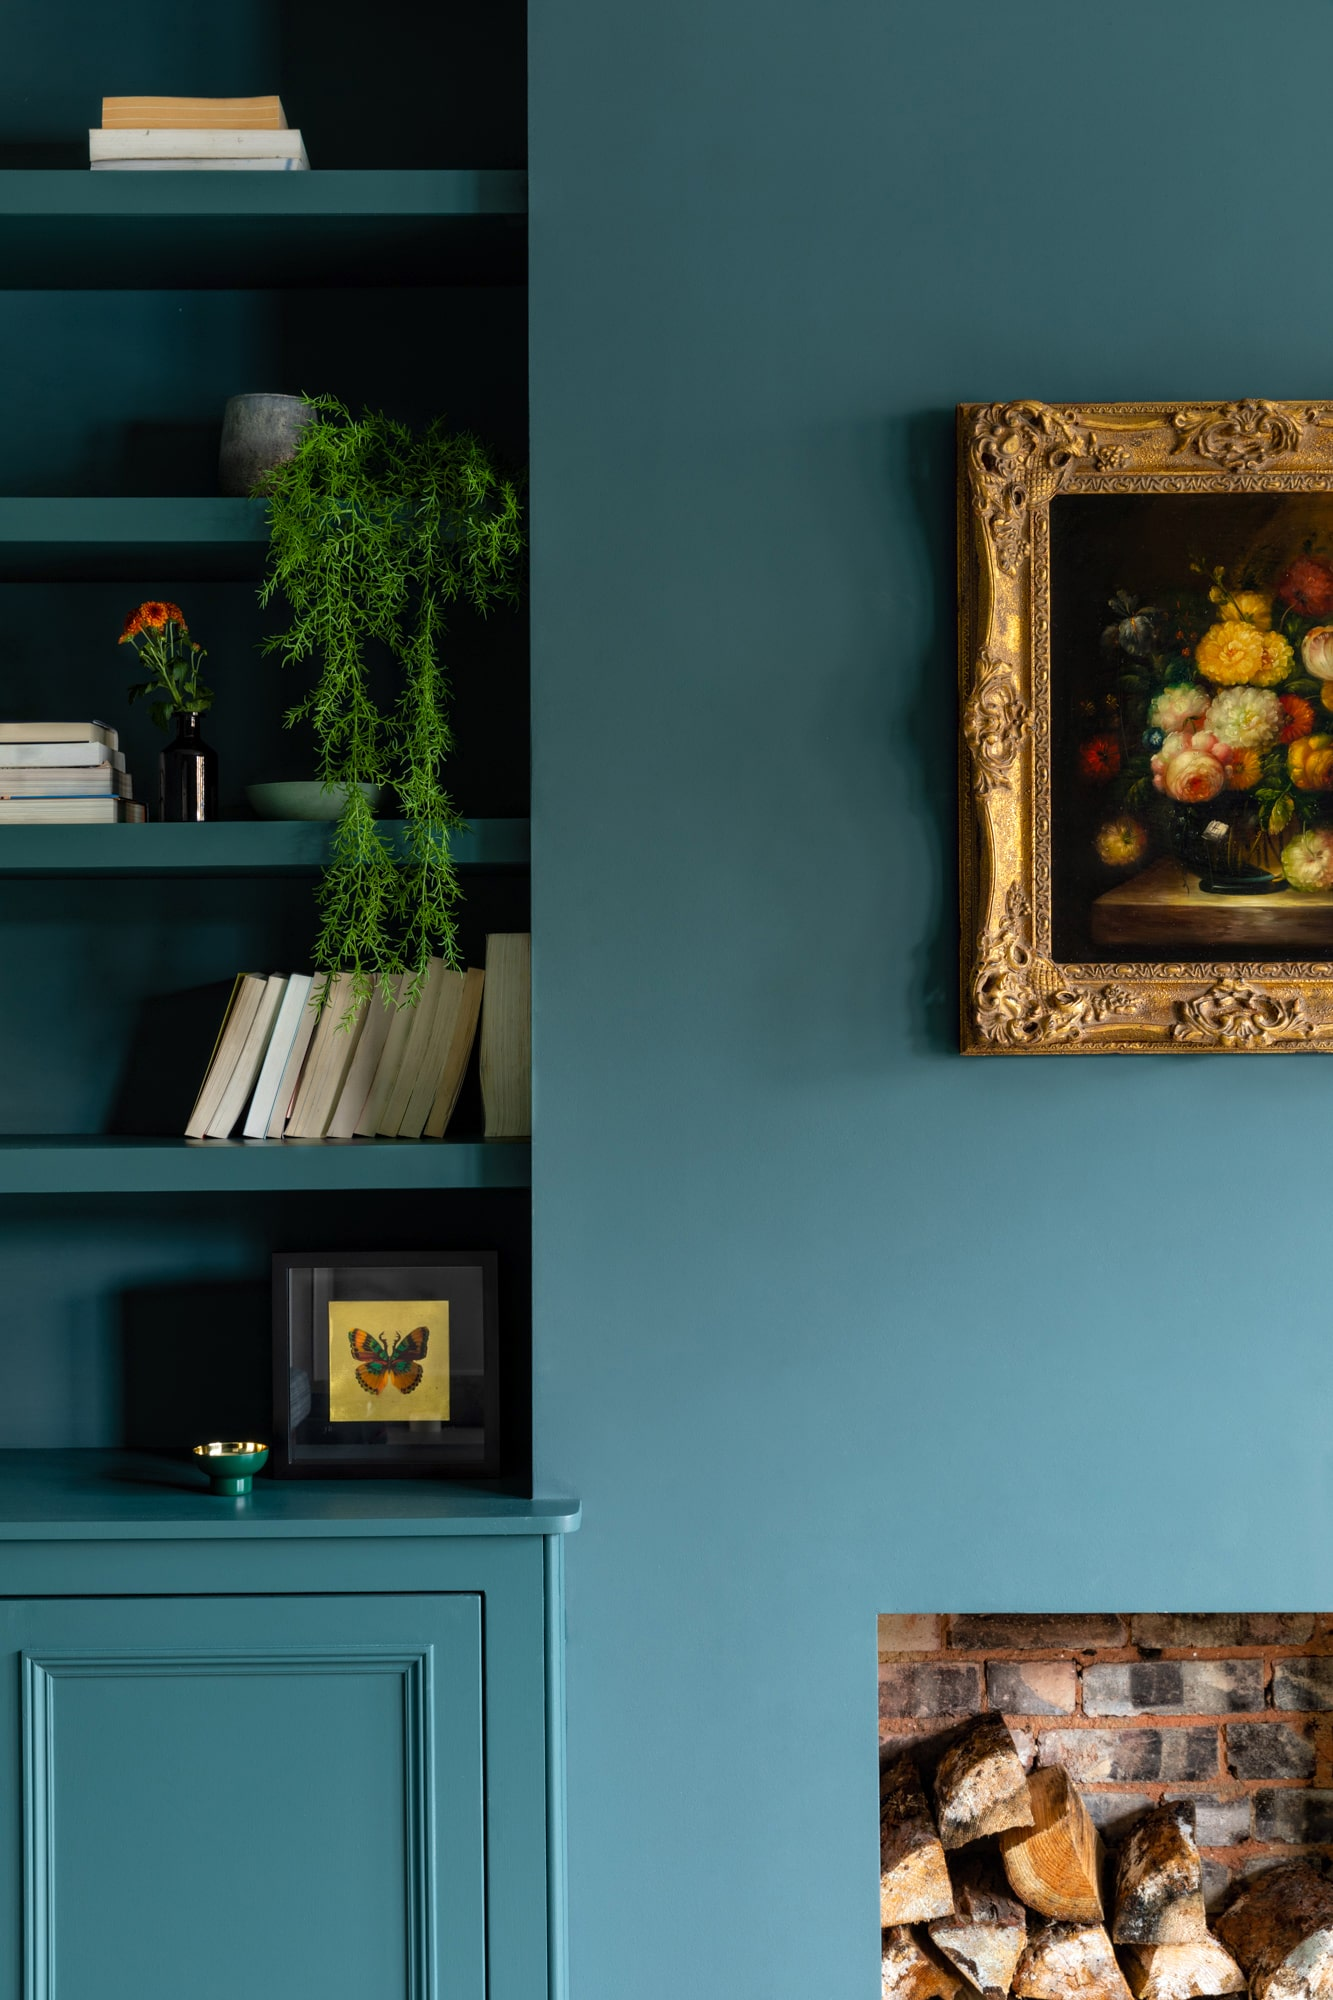 interior design image: a sitting room with dark blue walls, a fireplace with wood logs and a painting above it;  built in shelves and cardboard with plant pot, vase and books